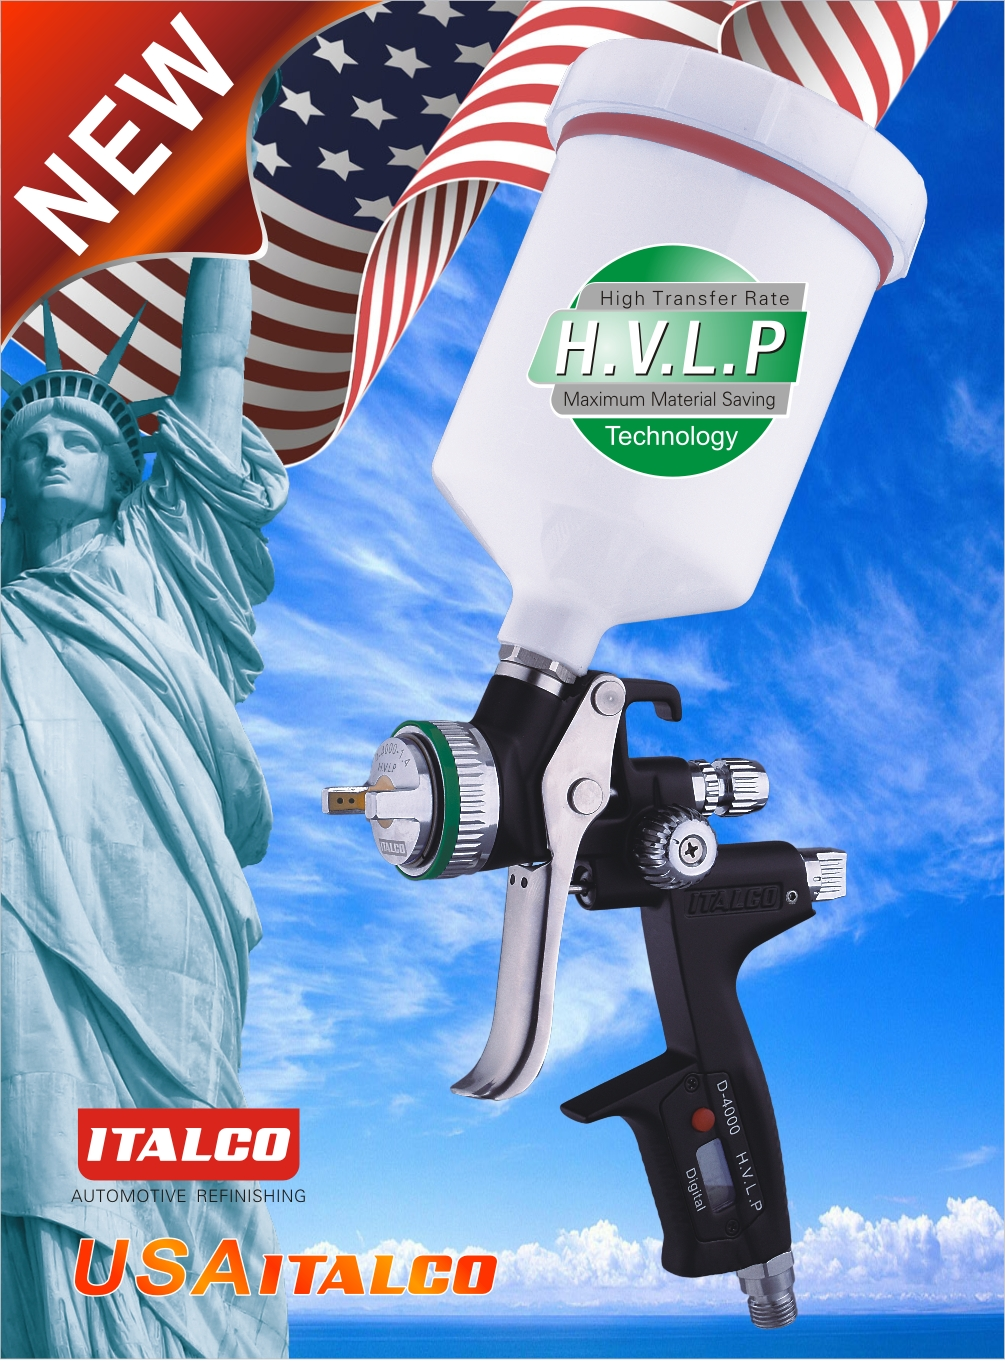 D-4000 H.V.L.P Digital Spray Gun